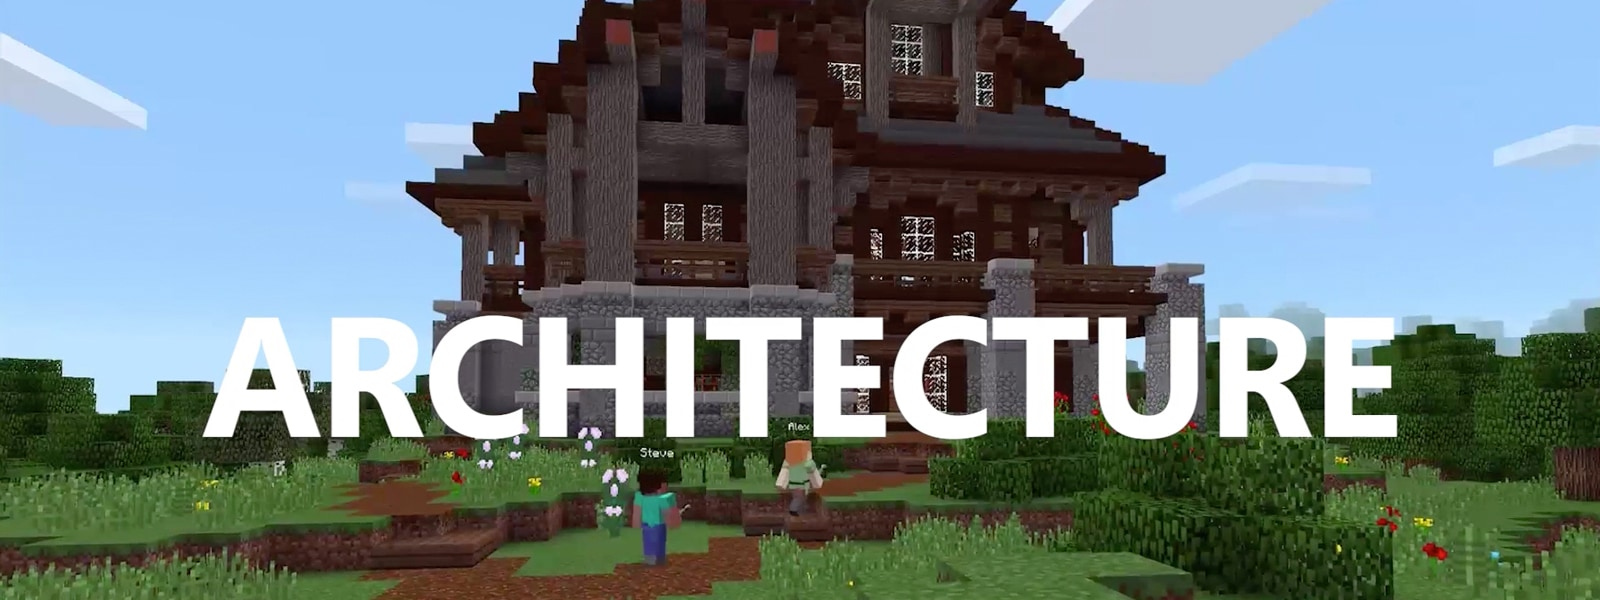 Windows PC Gaming Microsoft - Minecraft spielen auf laptop